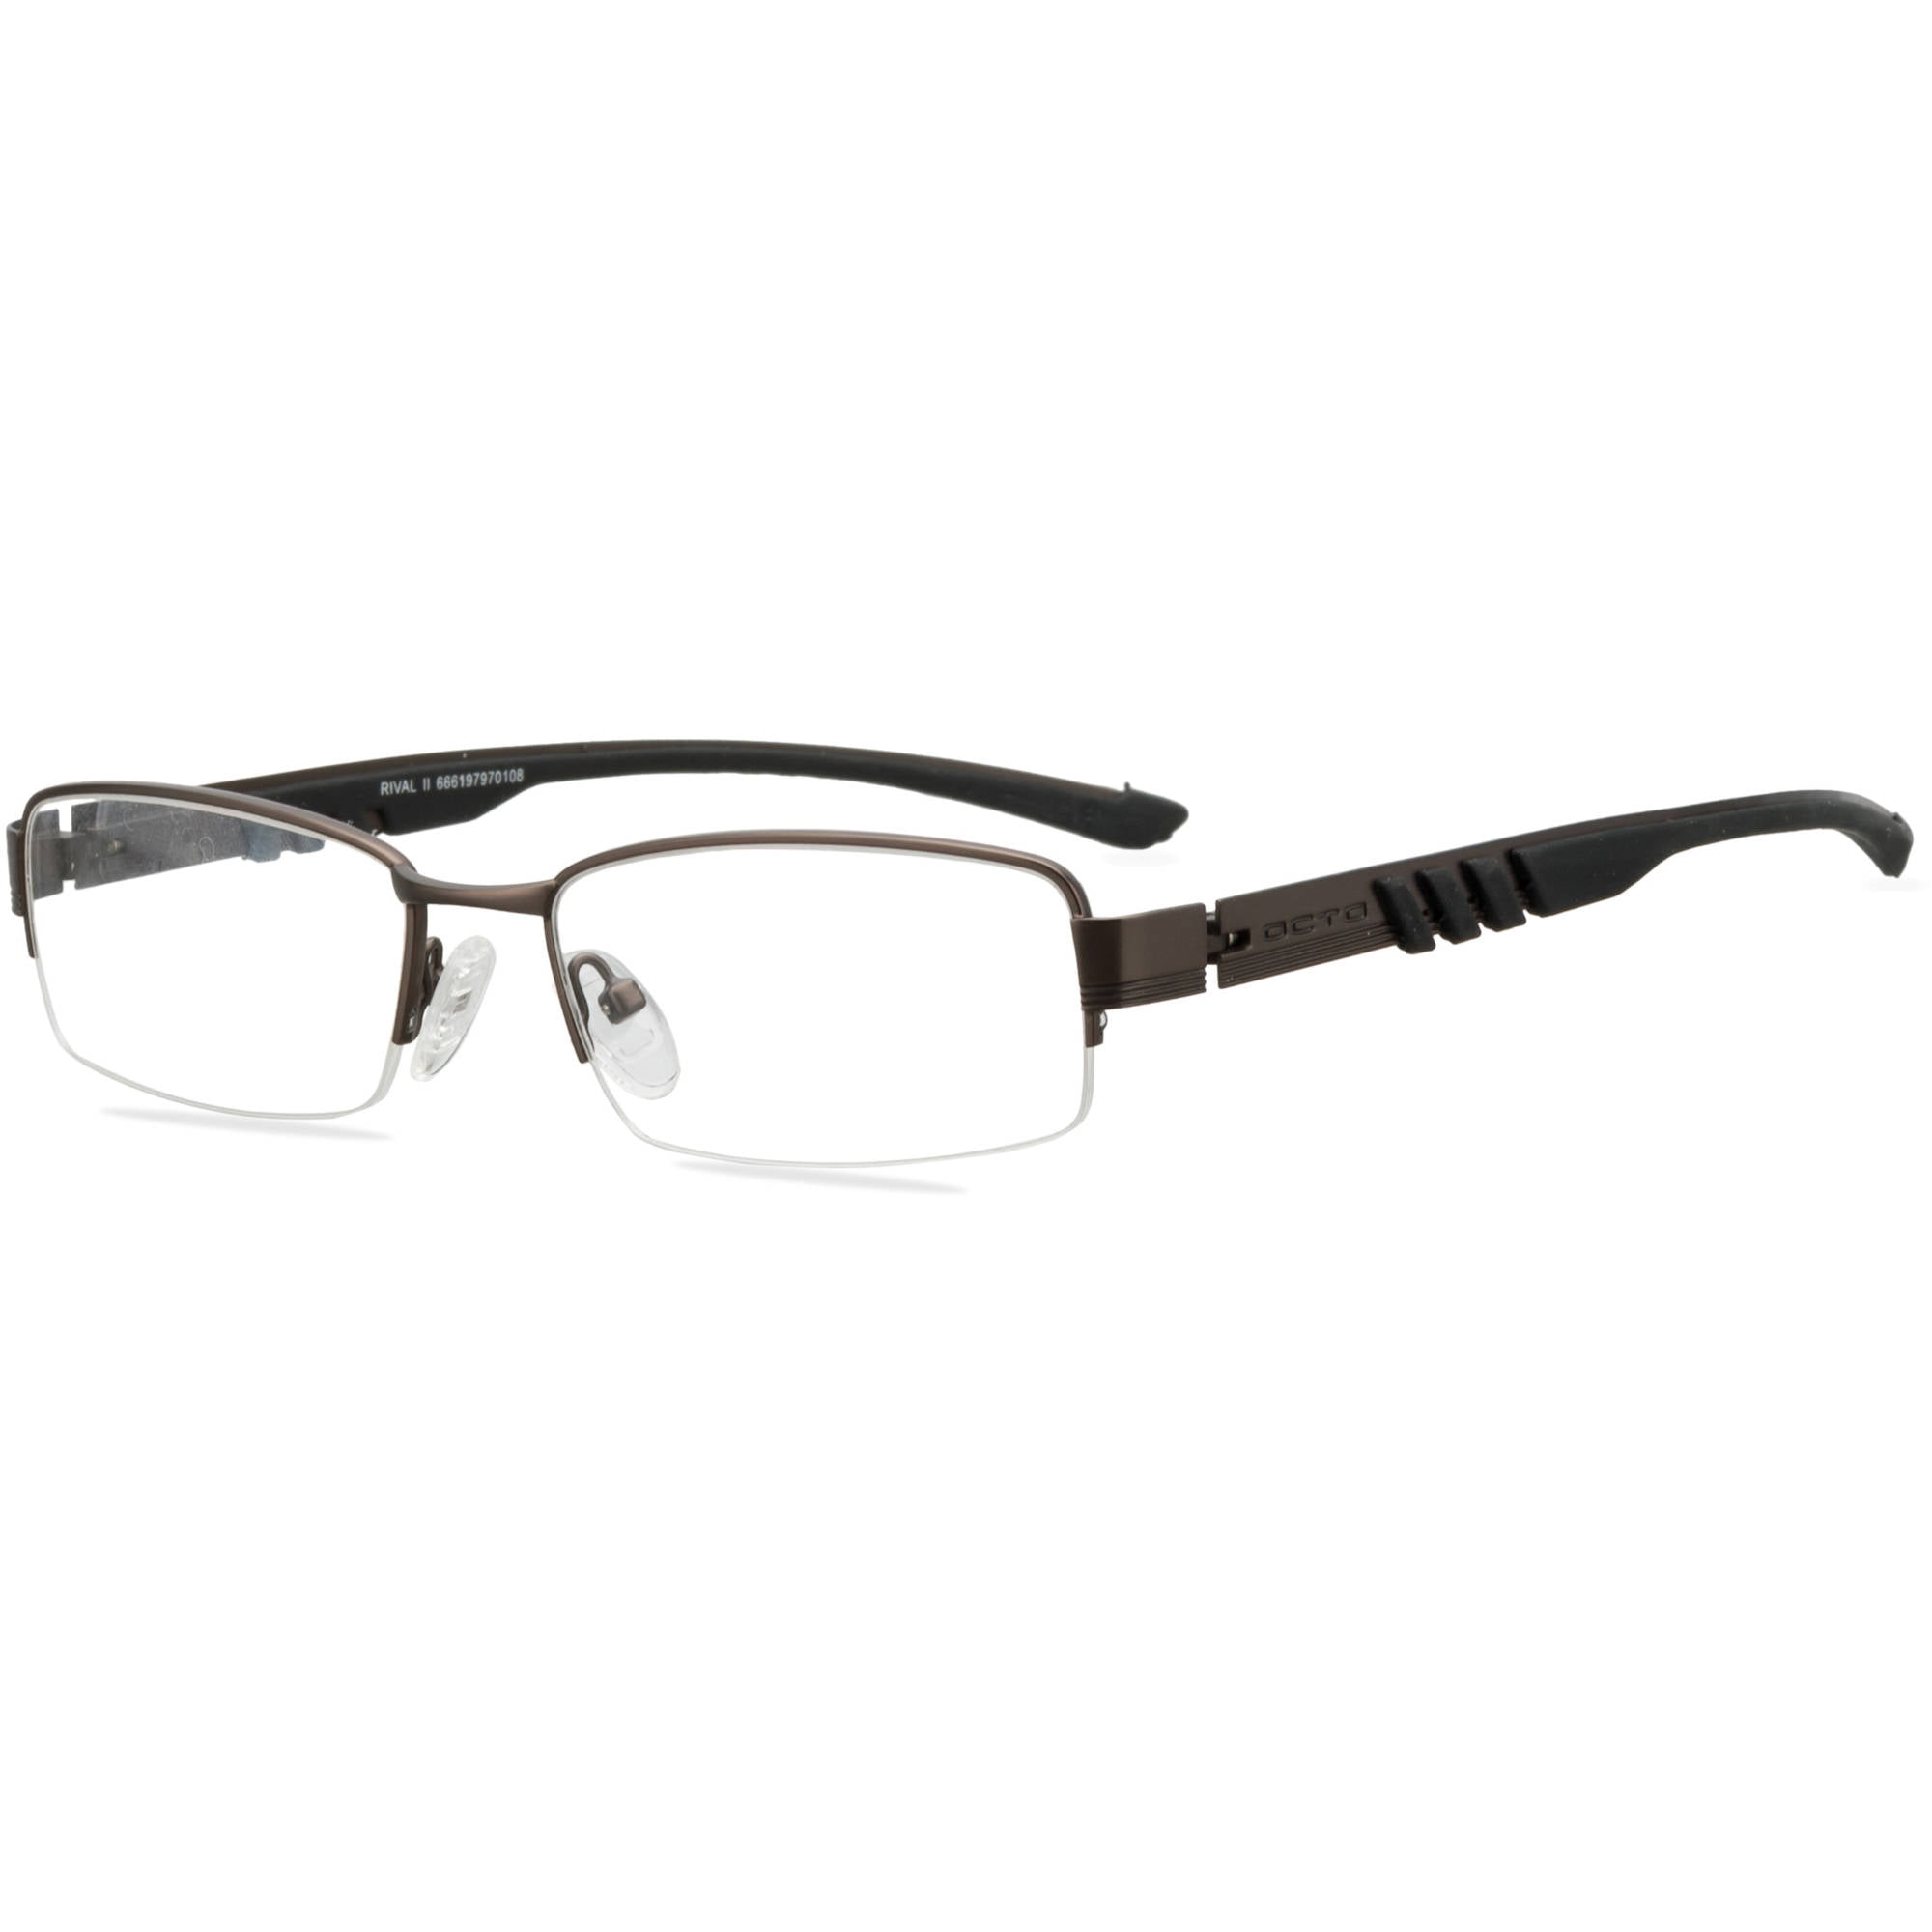 OCTO180 Mens Prescription Glasses, Rival II Mat. Gun/Blk - Walmart.com